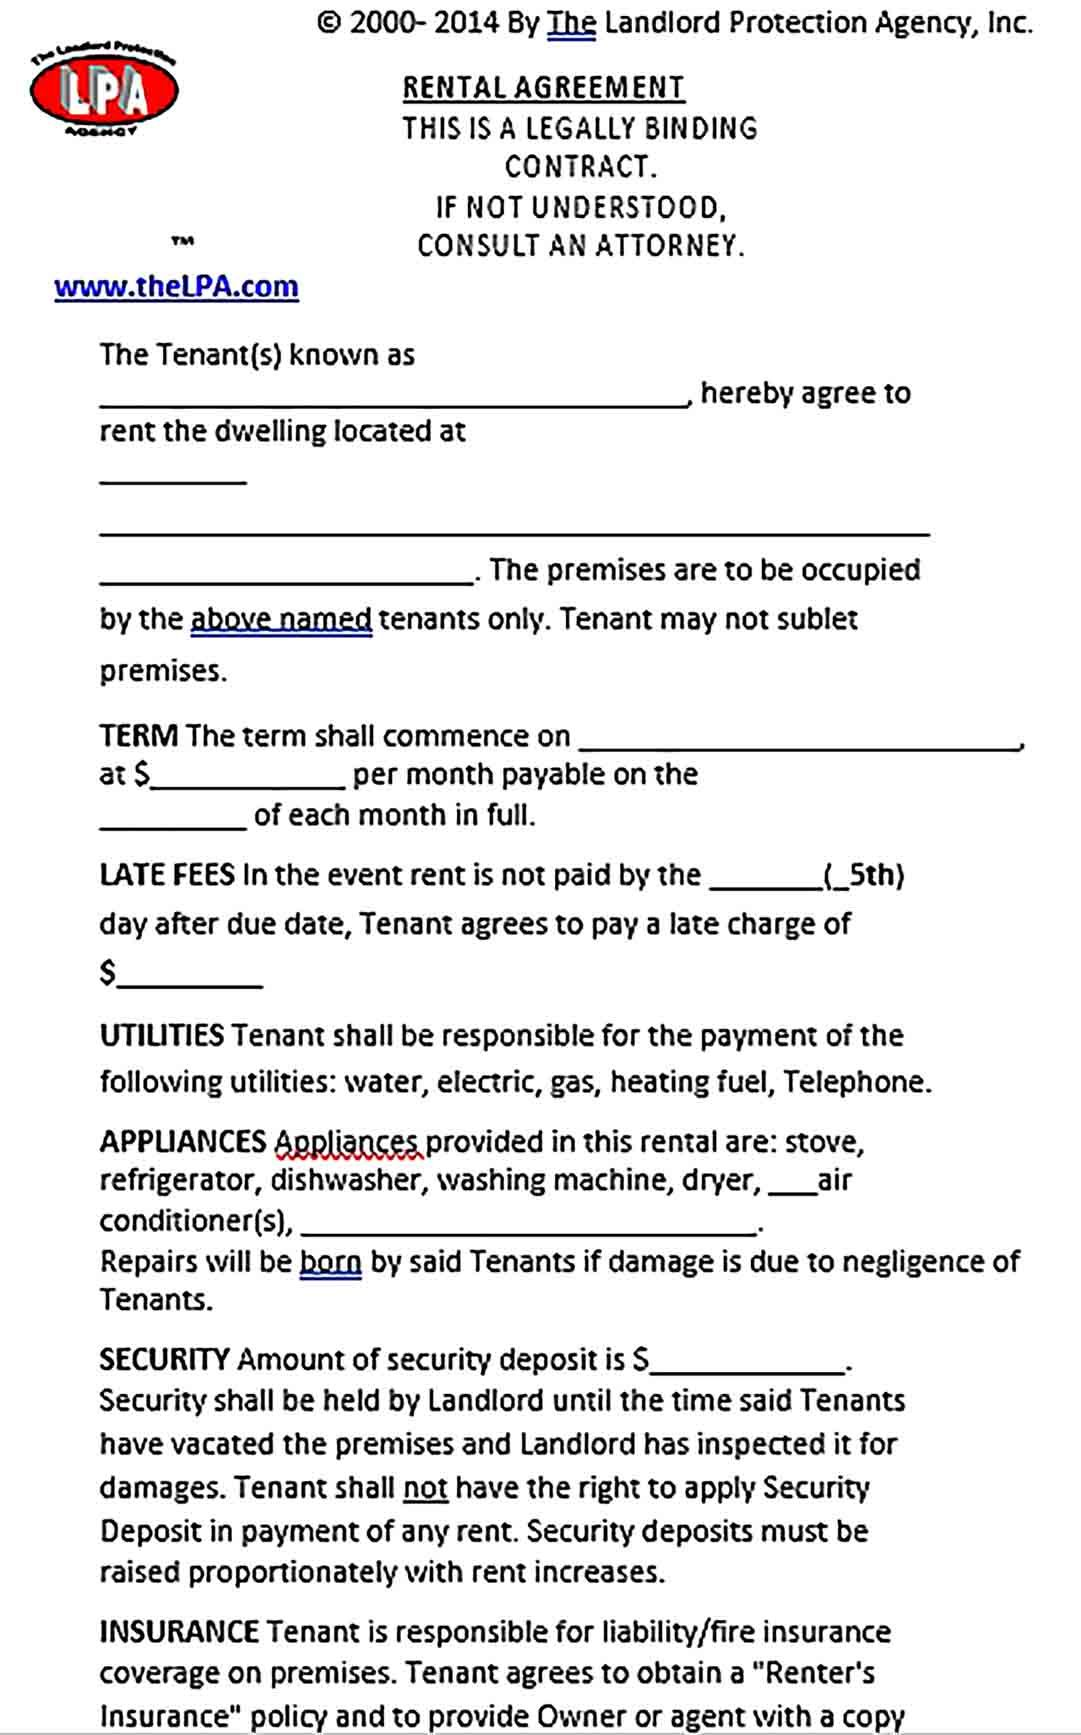 Basic Rental Agreement Sample Template Rental Agreement Templates Being A Landlord Business Template